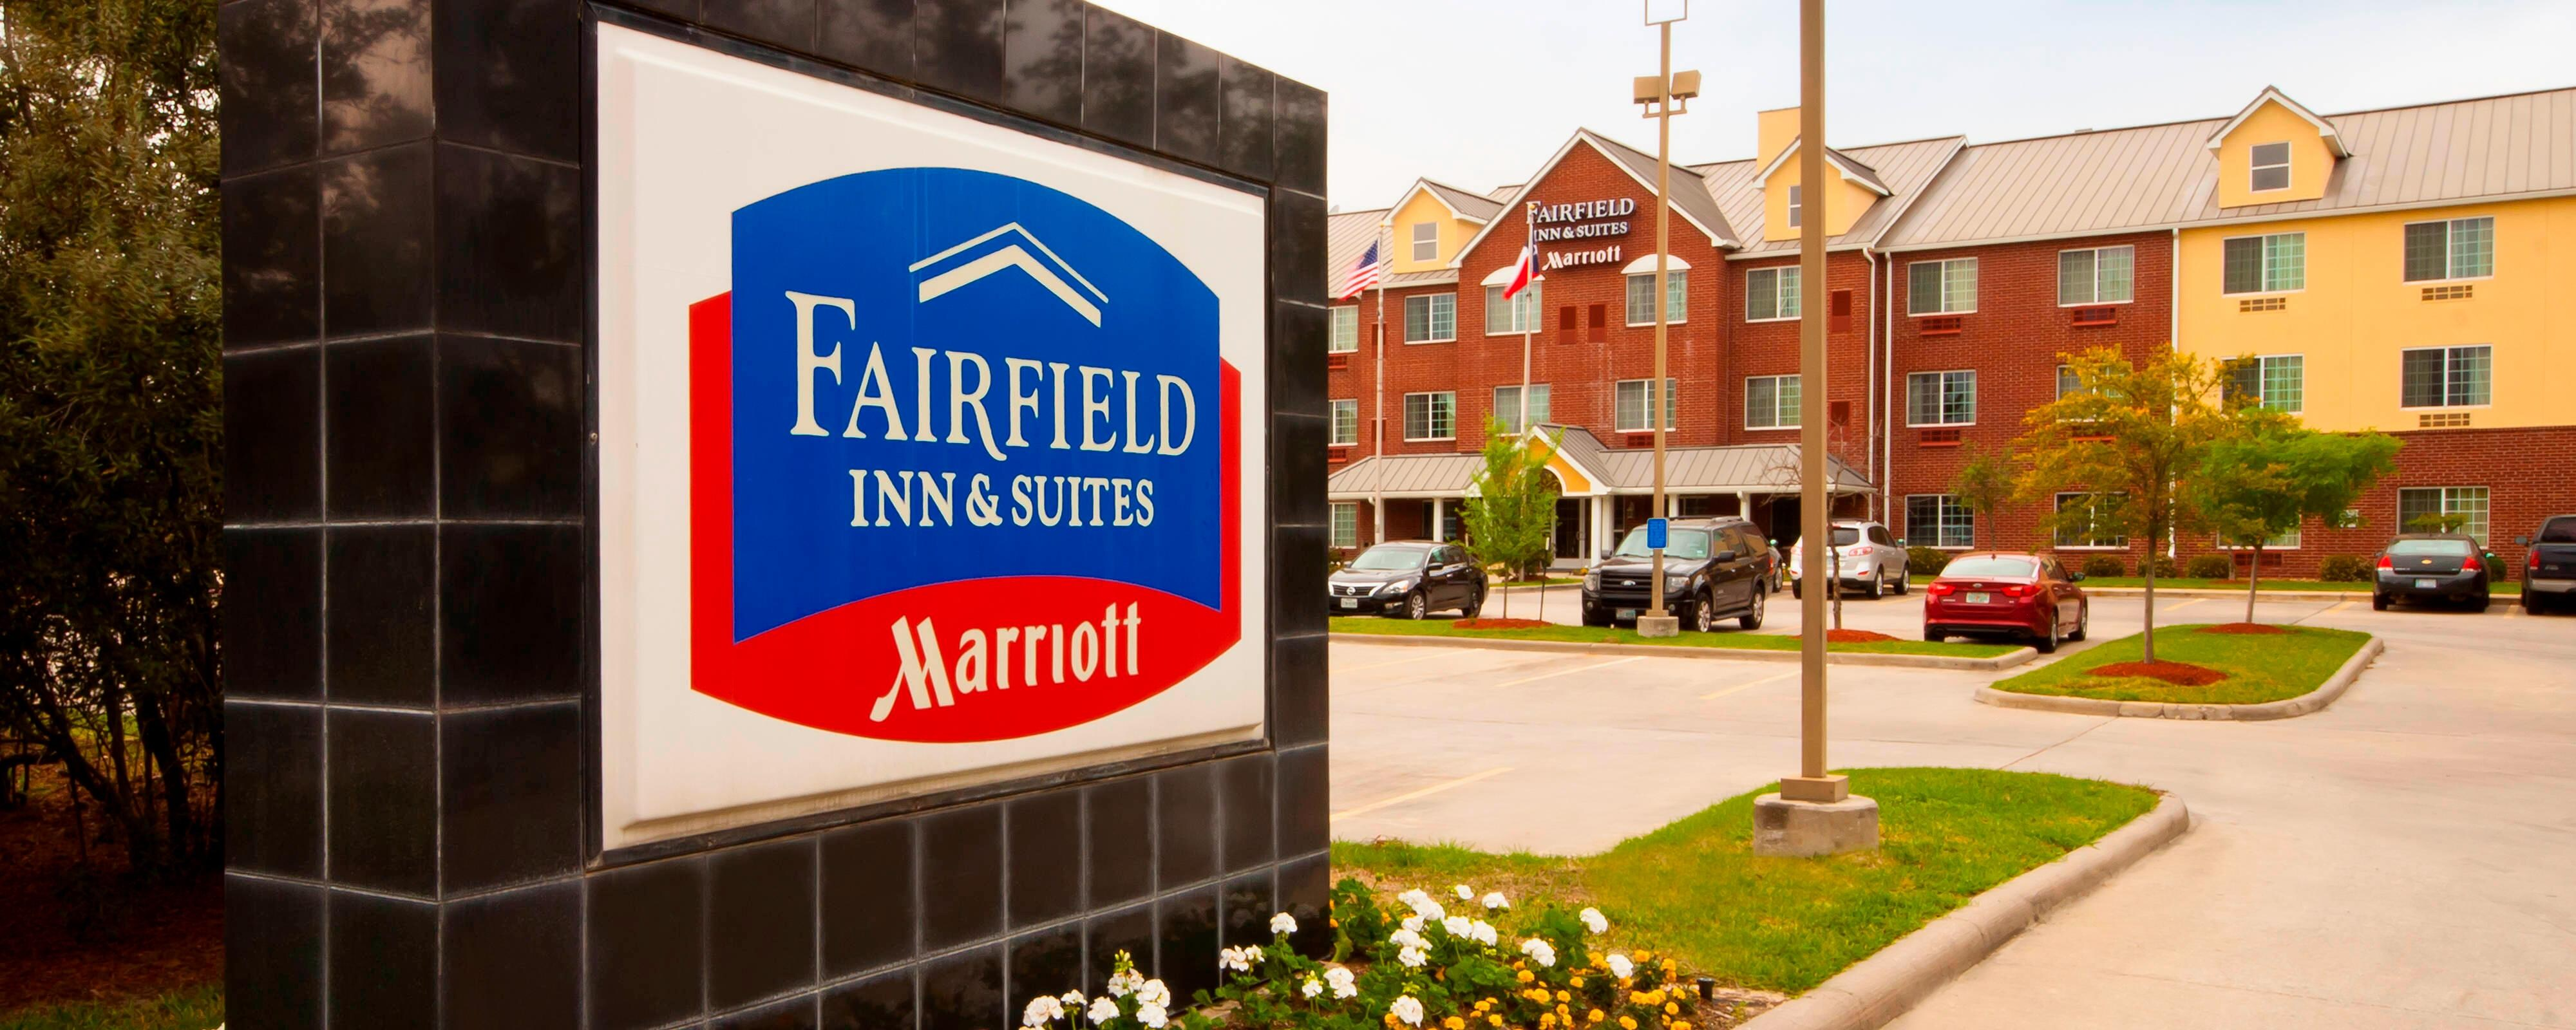 Außenansicht des Houston Woodlands Fairfield Hotels